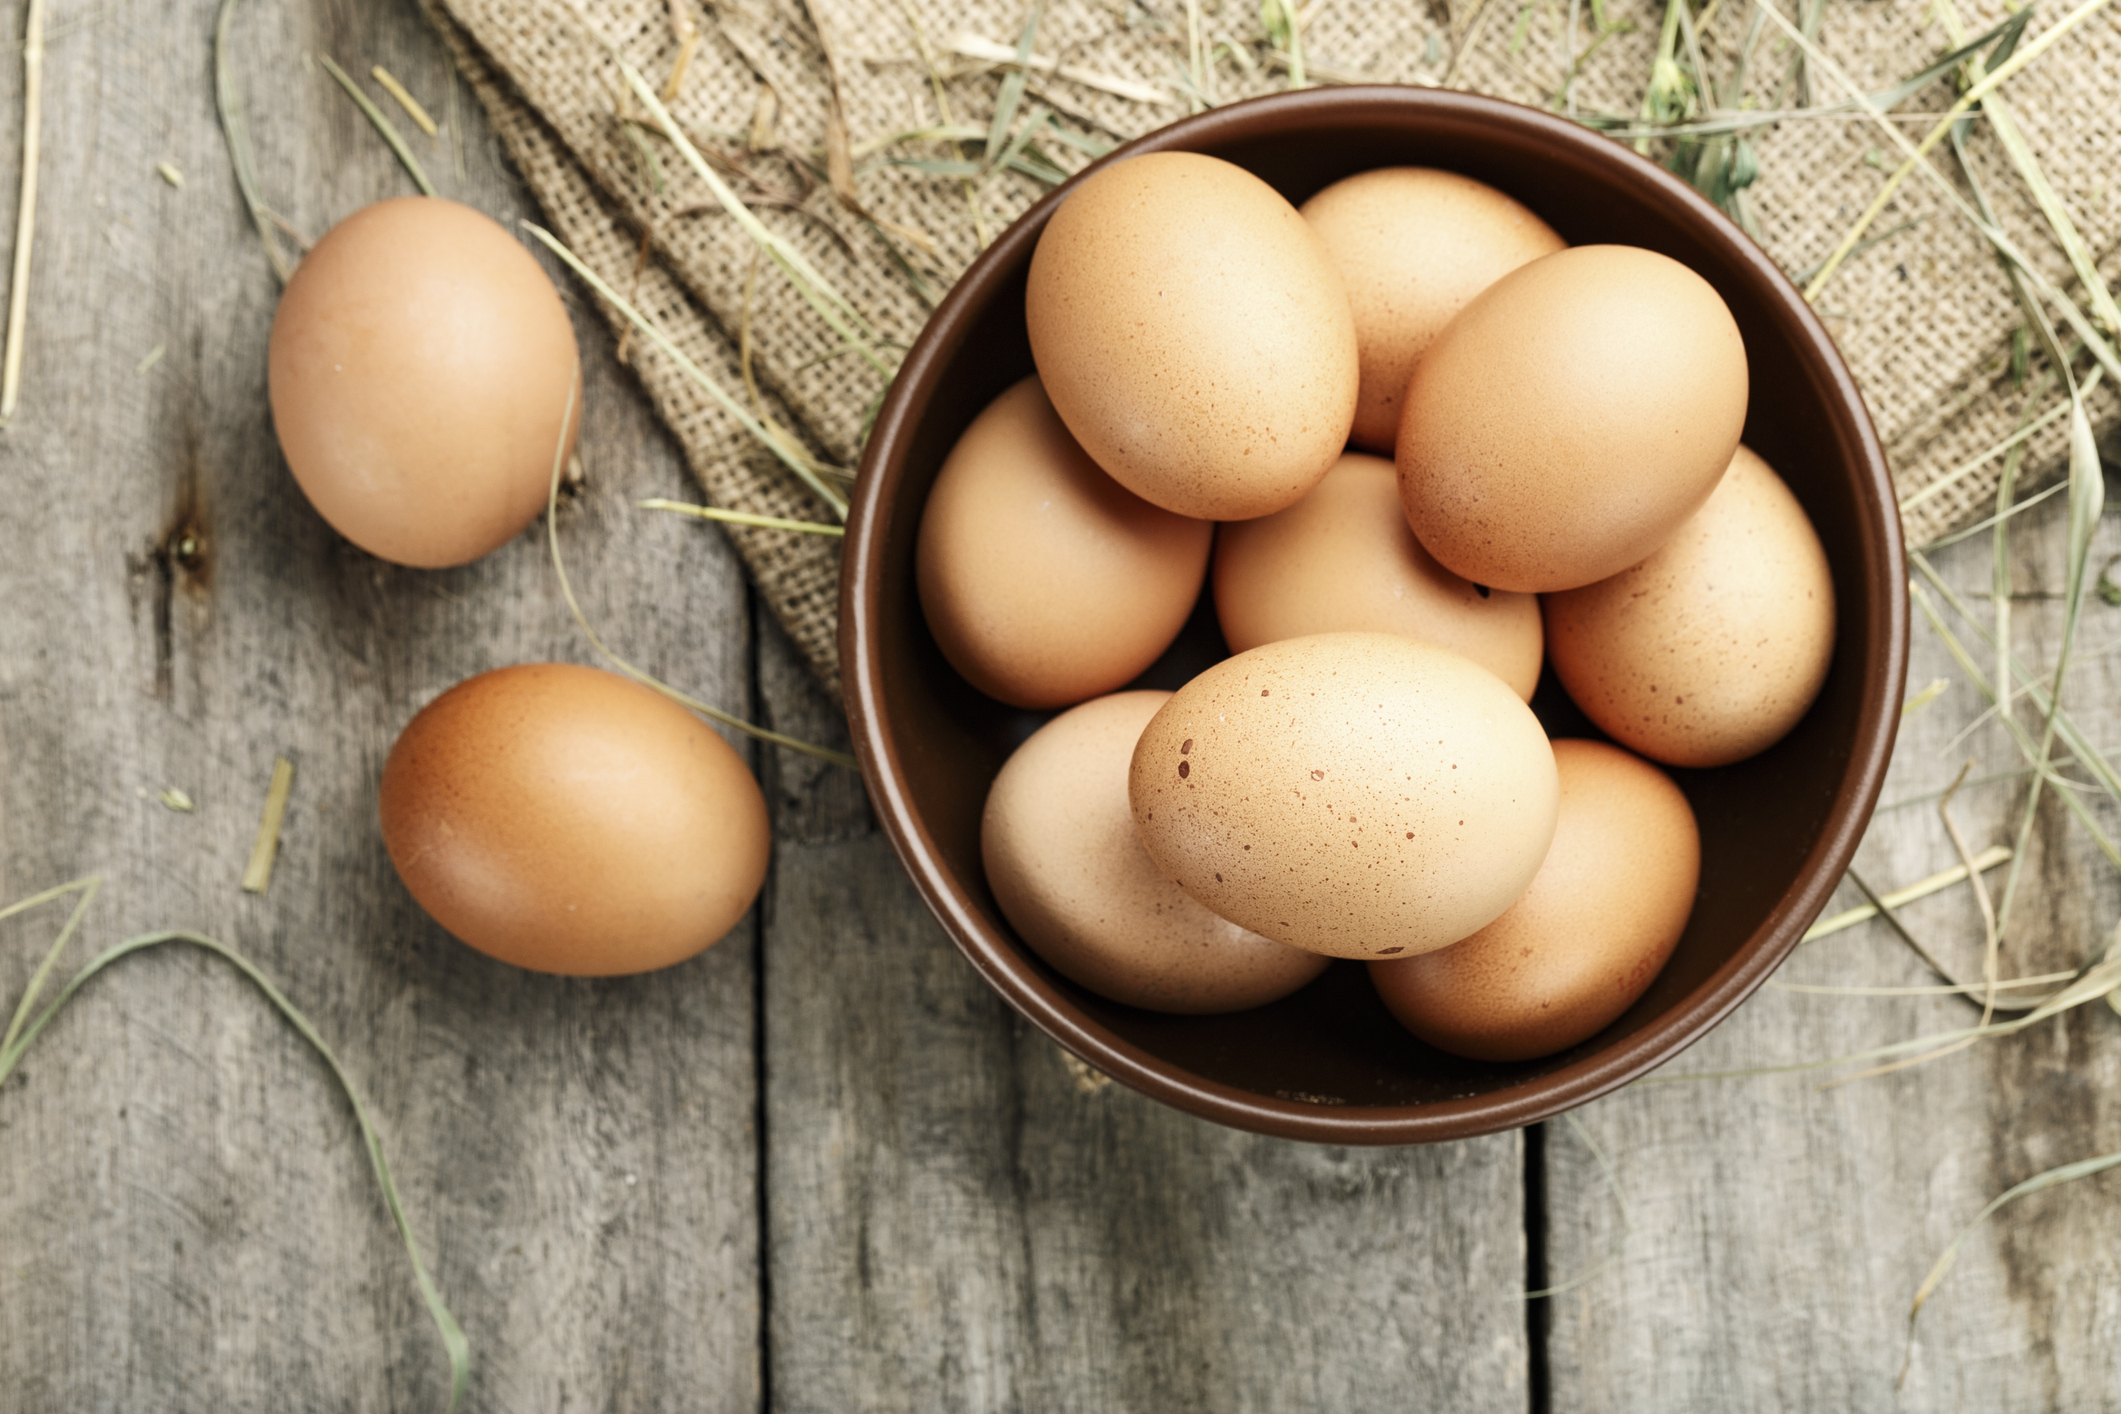 Getty Image: Eggs in Bowl